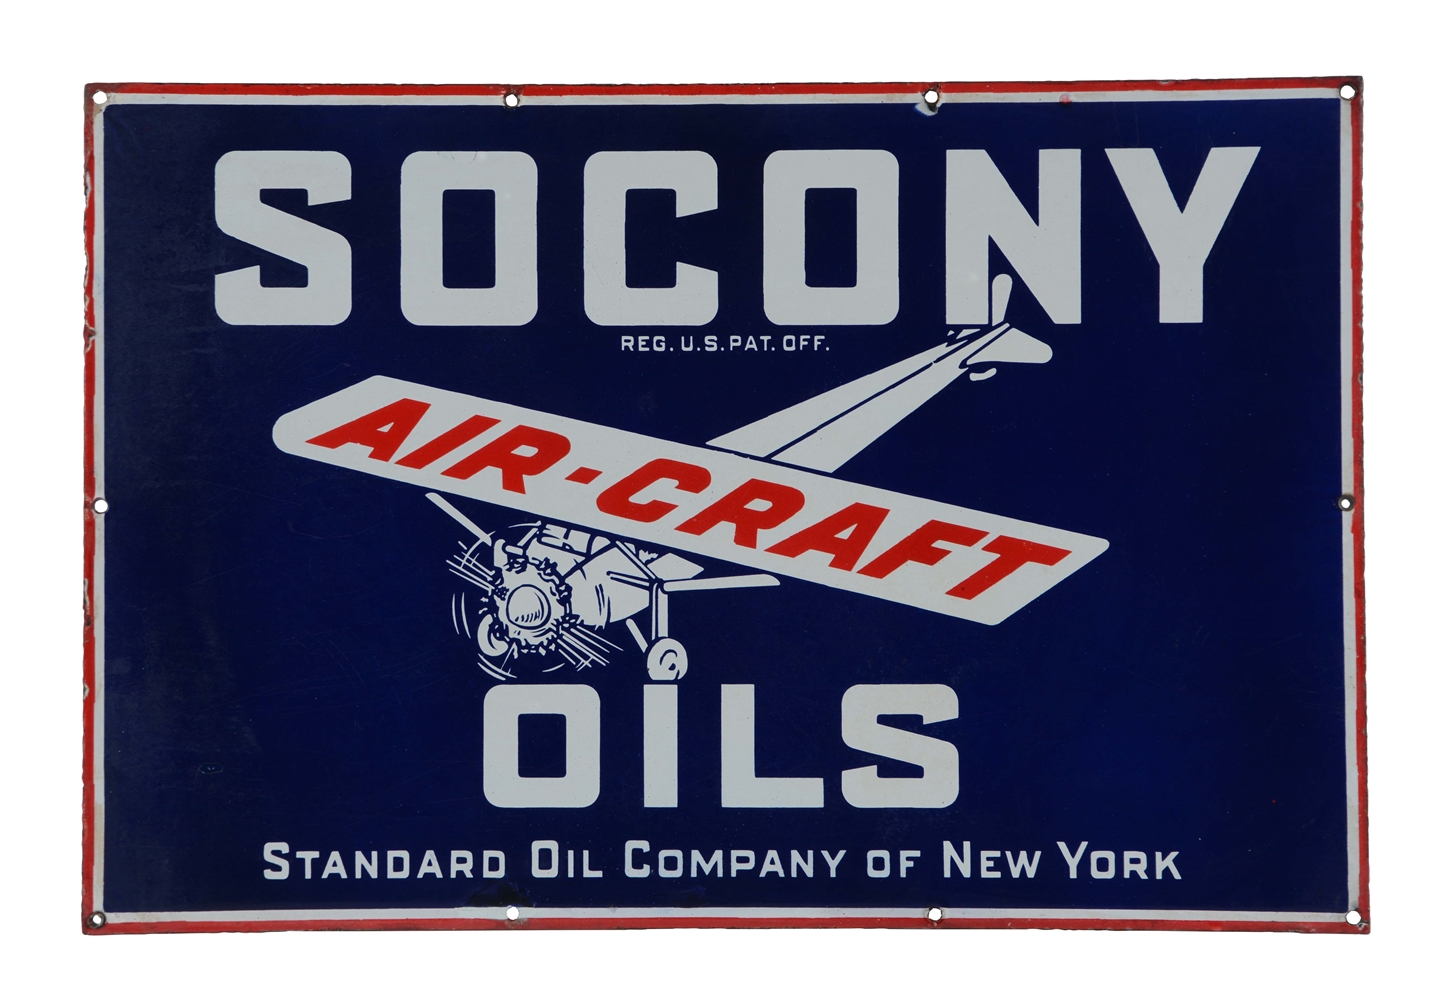 Socony Aircraft Oils Porcelain Sign with Airplane Graphic.